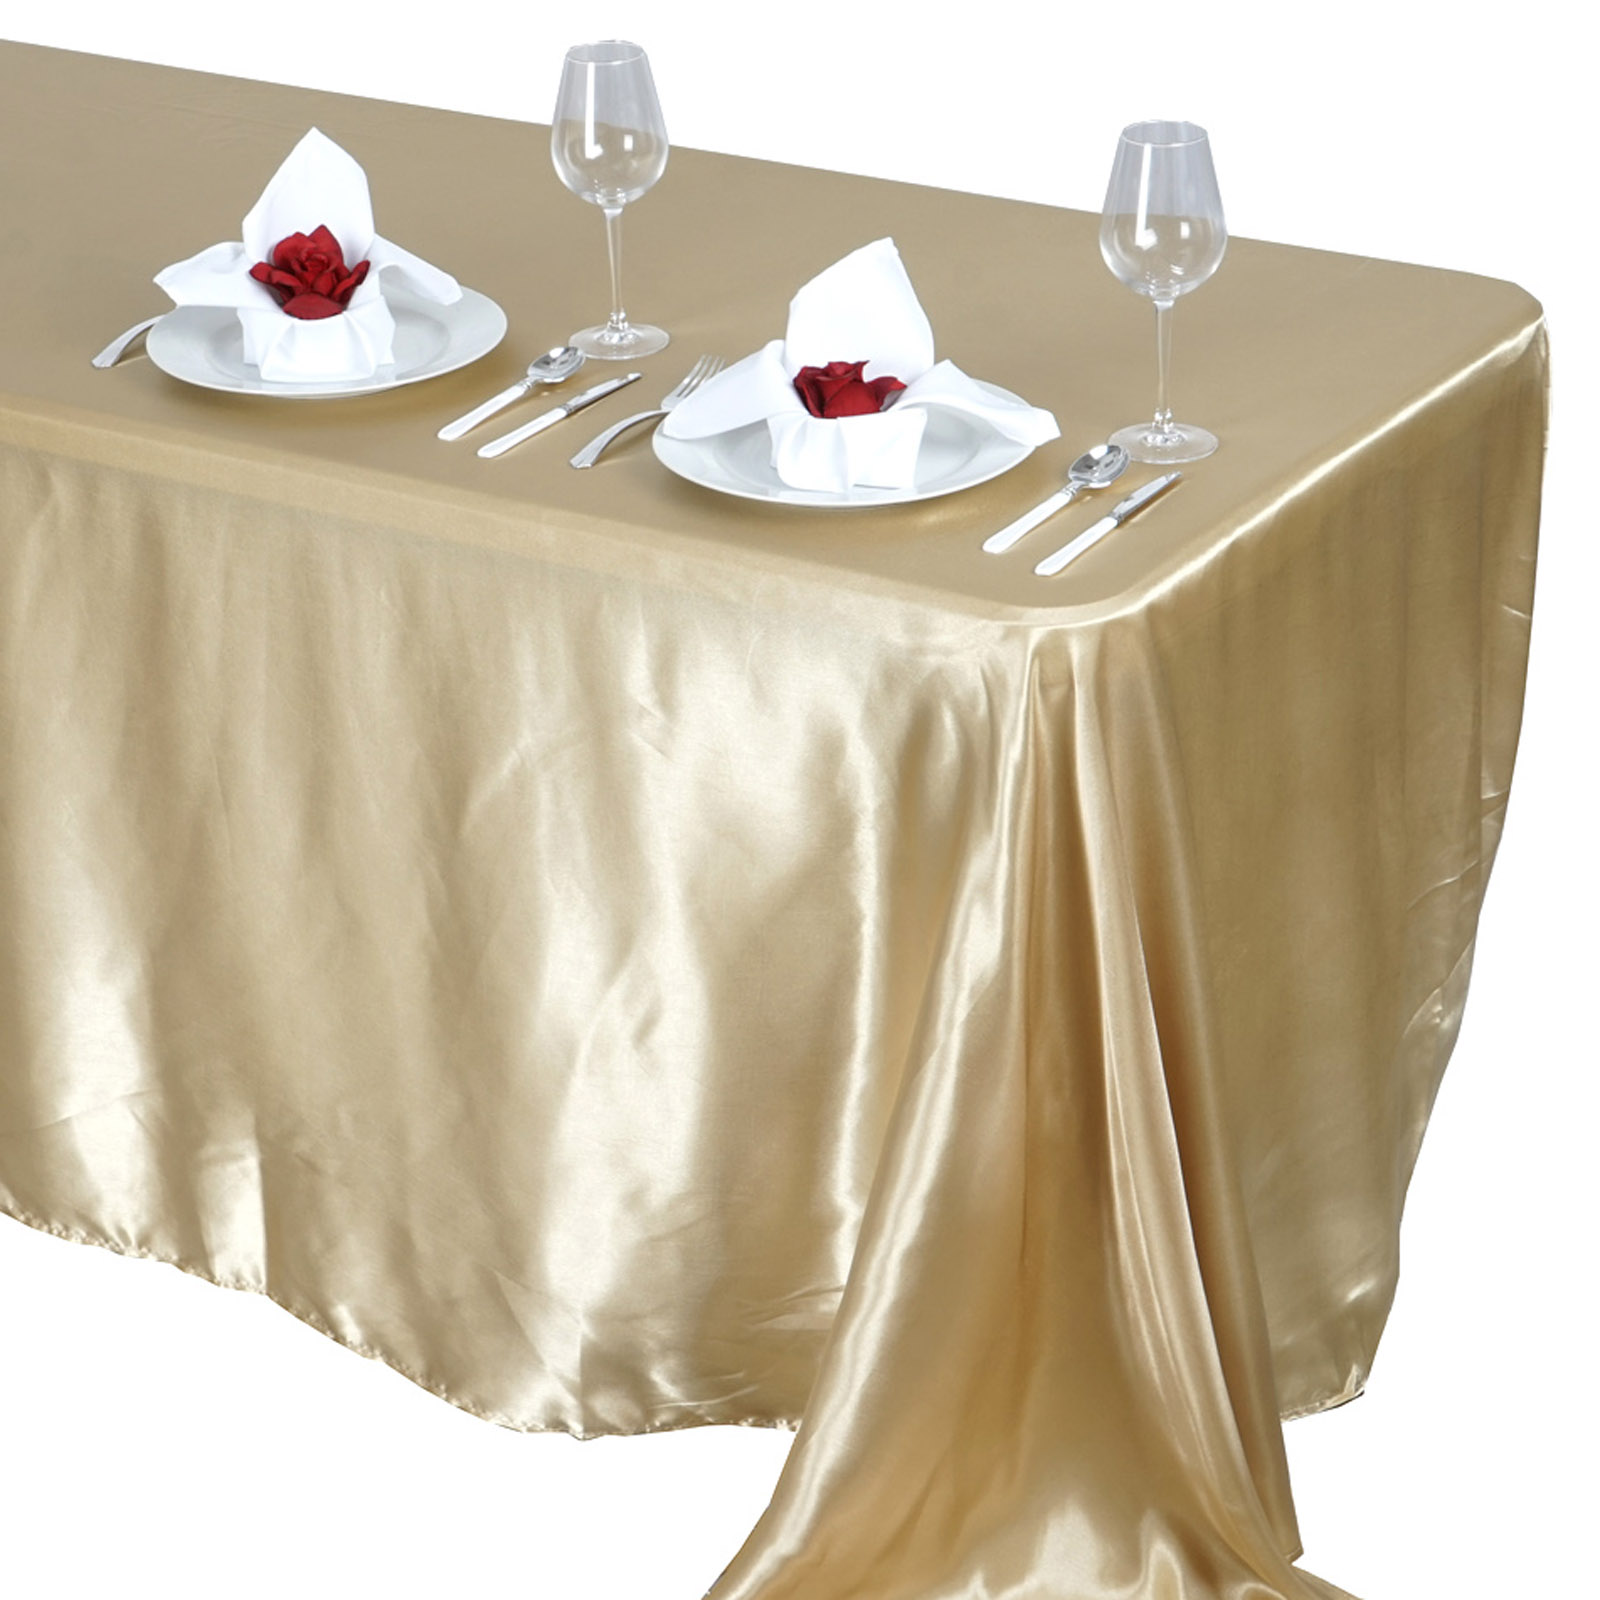 90x132-034-Rectangle-Satin-Tablecloth-For-Wedding-Party-Banquet-Events-Decoration thumbnail 18